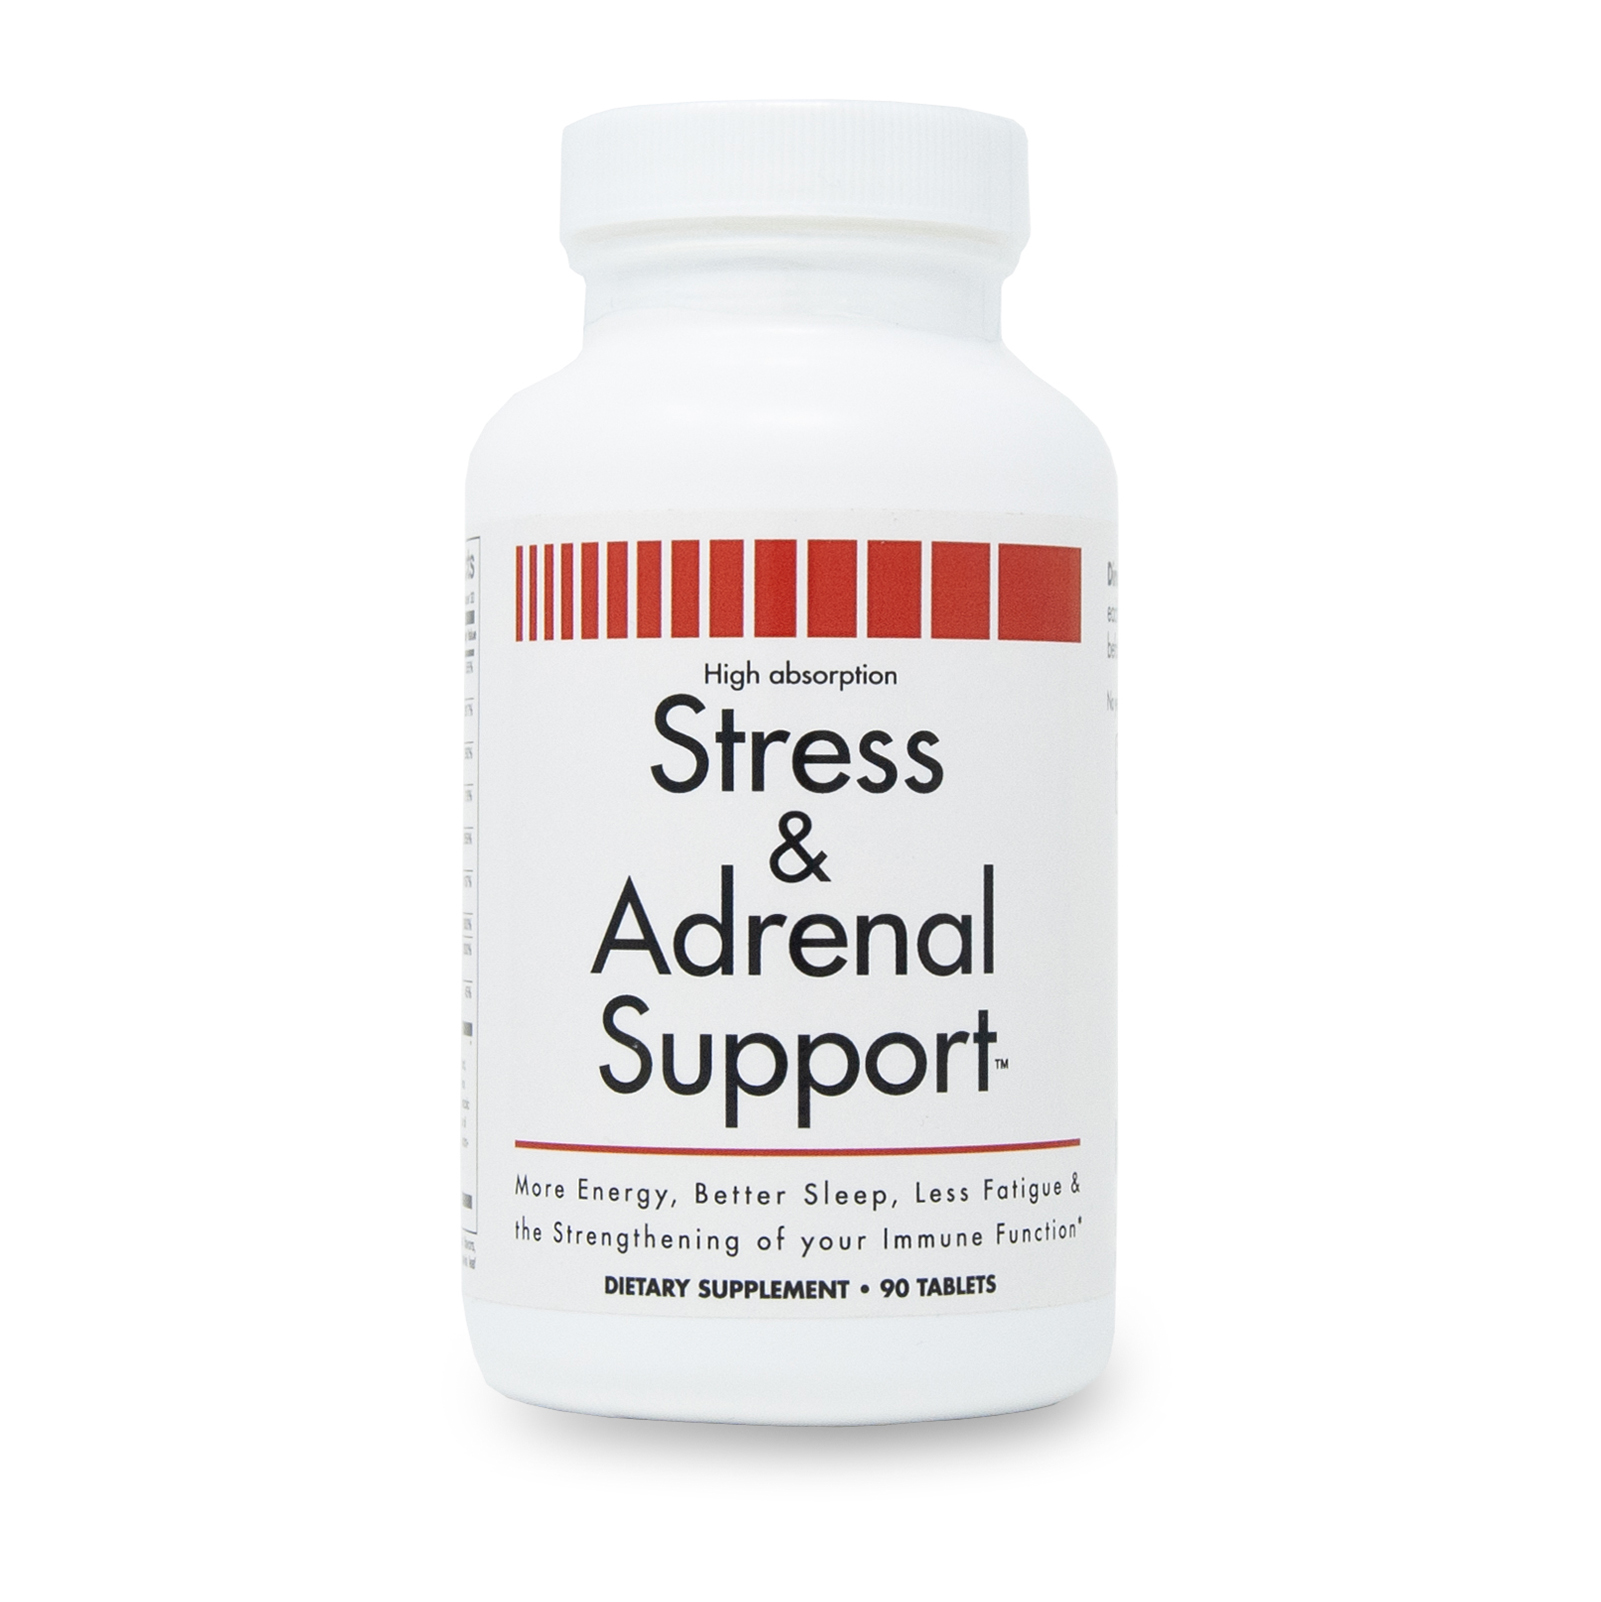 Stress & Adrenal Support